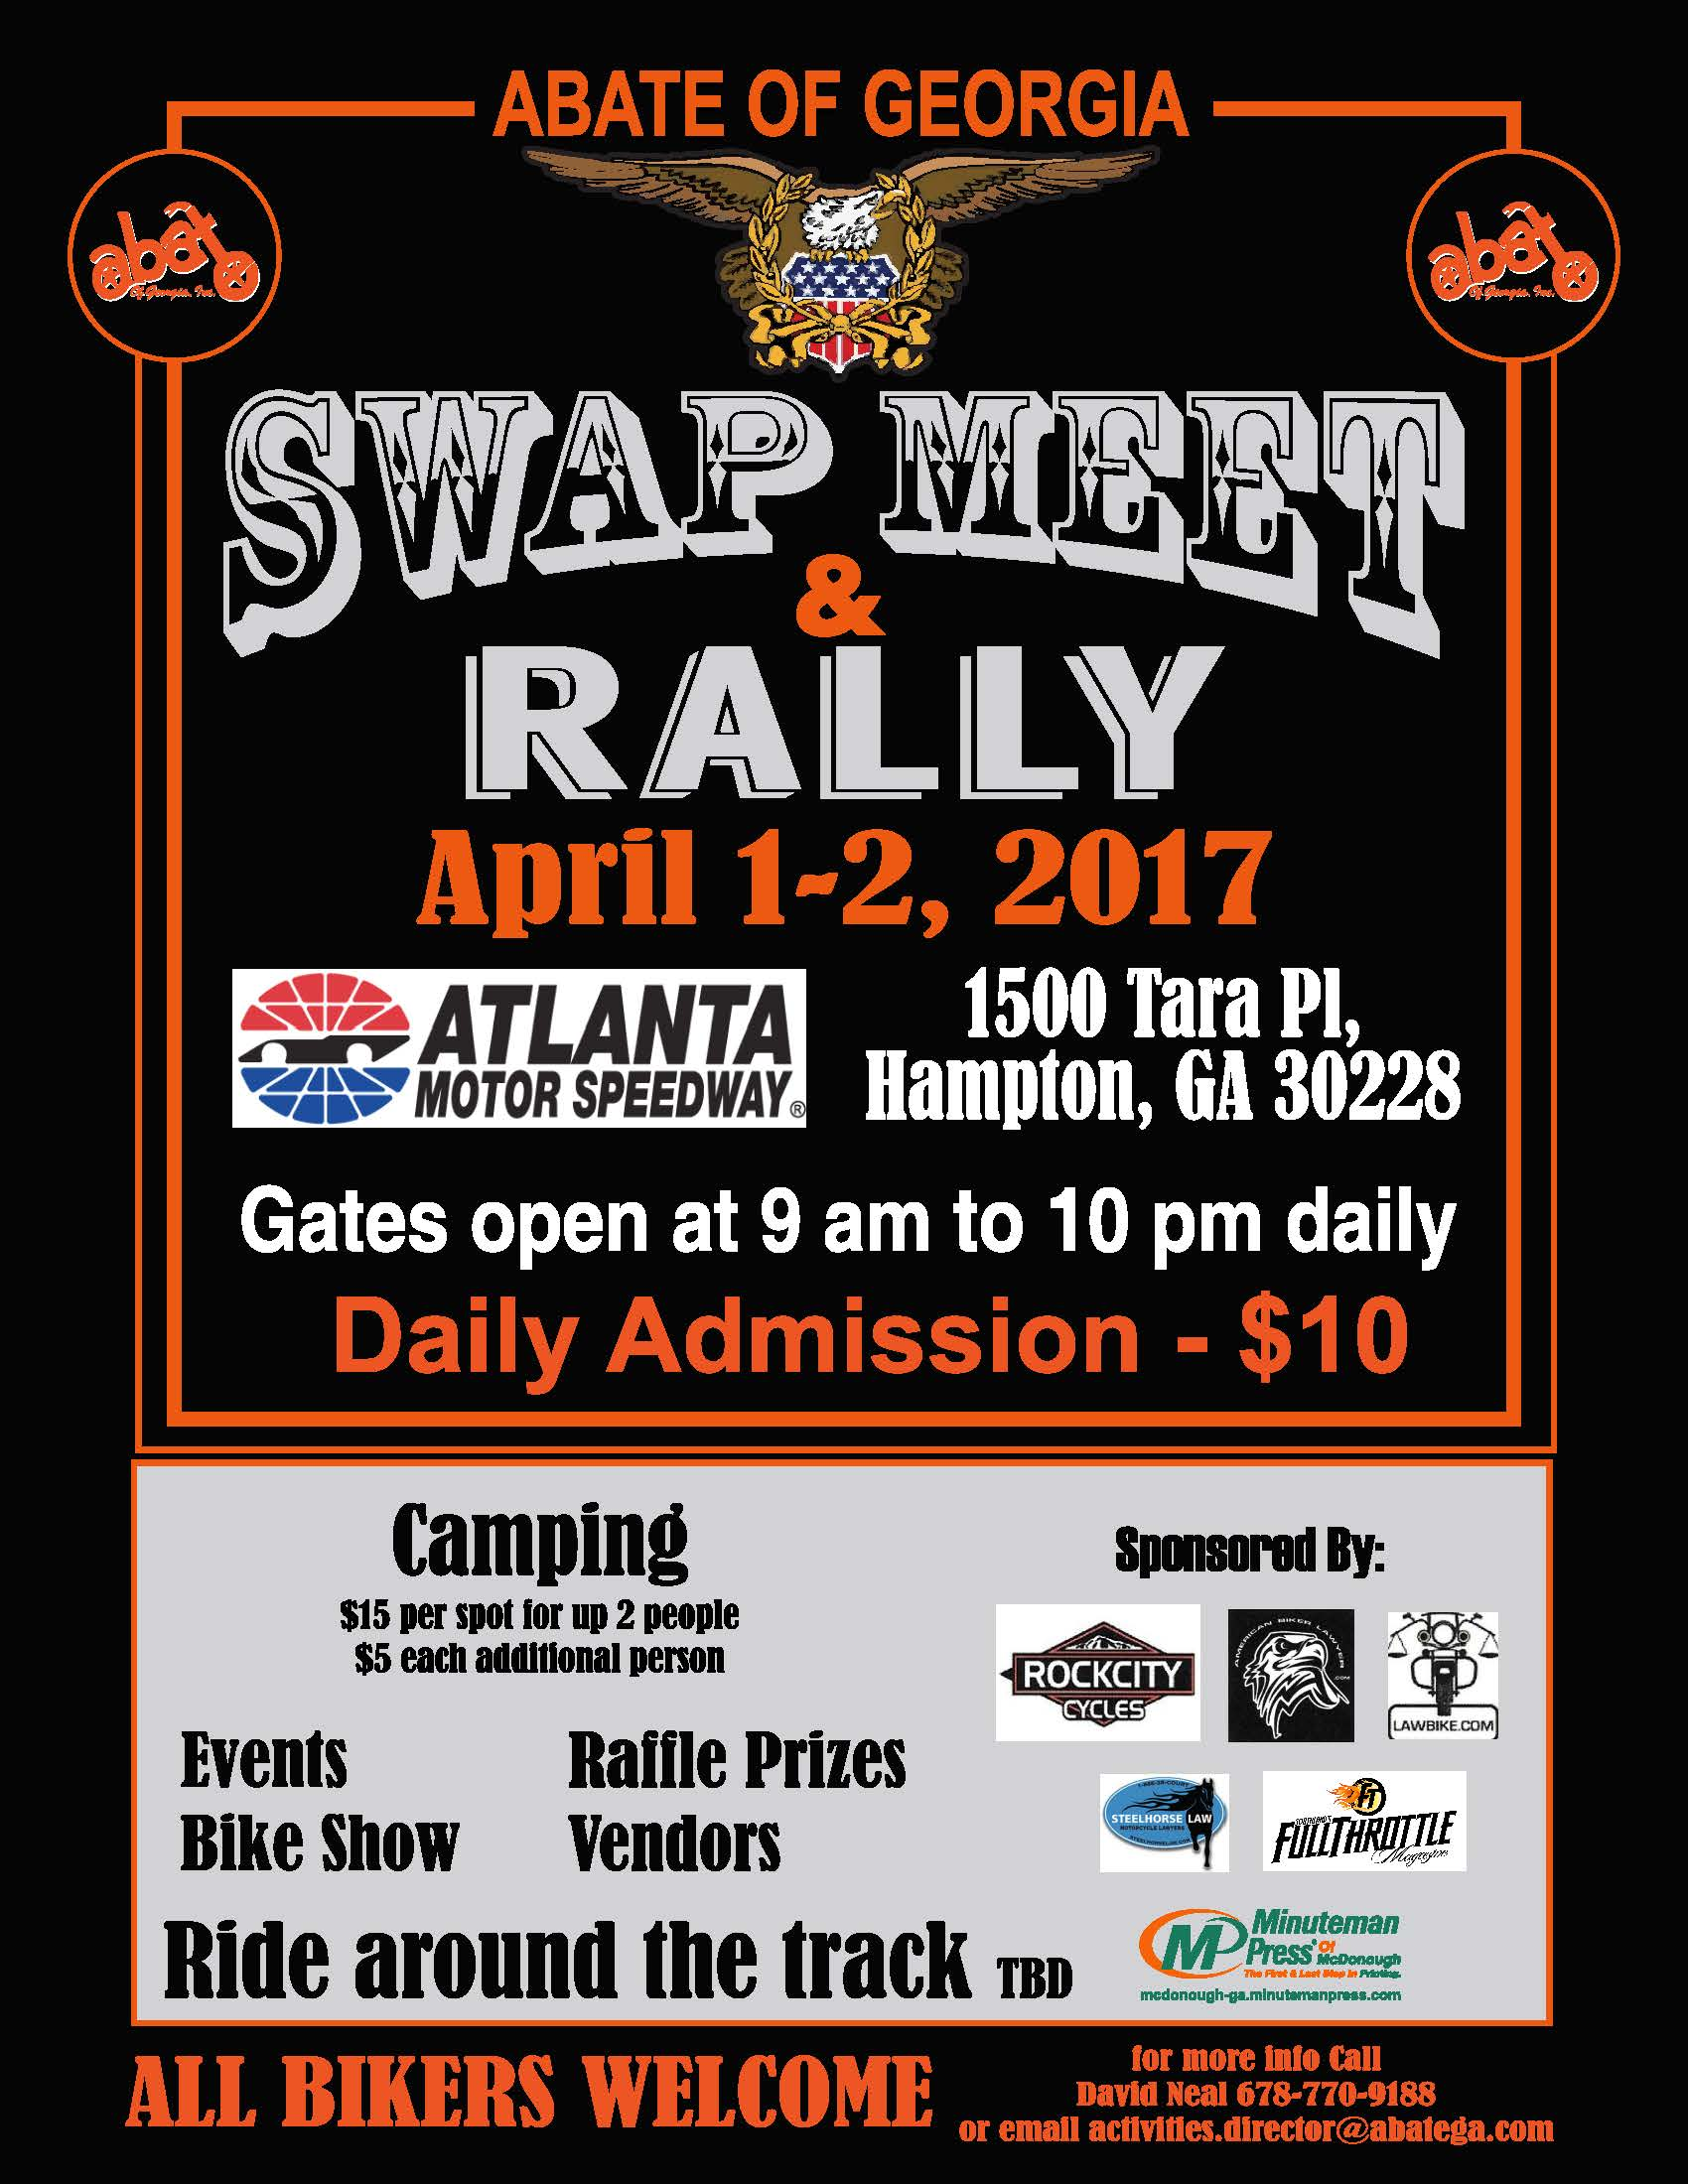 ABATE of Georgia Swap Meet Rally